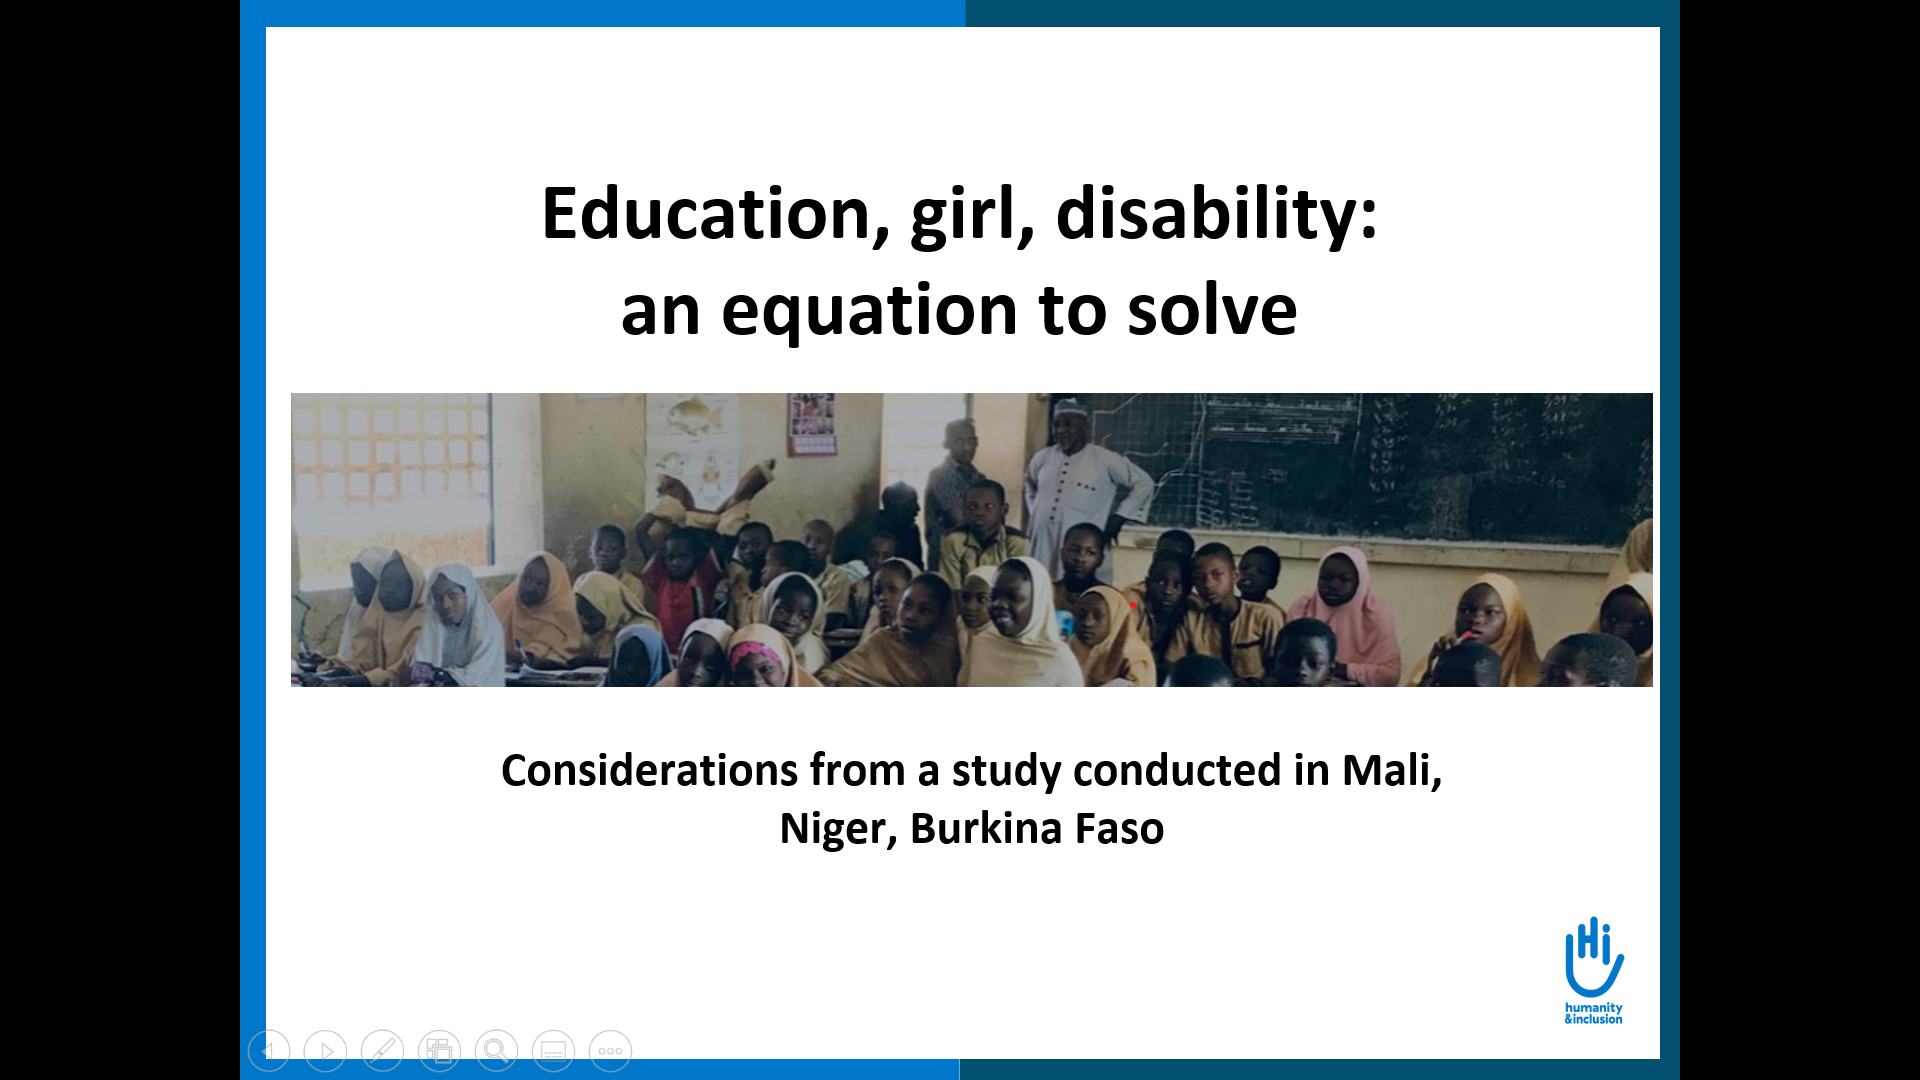 Education, girl, disability: an equation to solve - Presentation